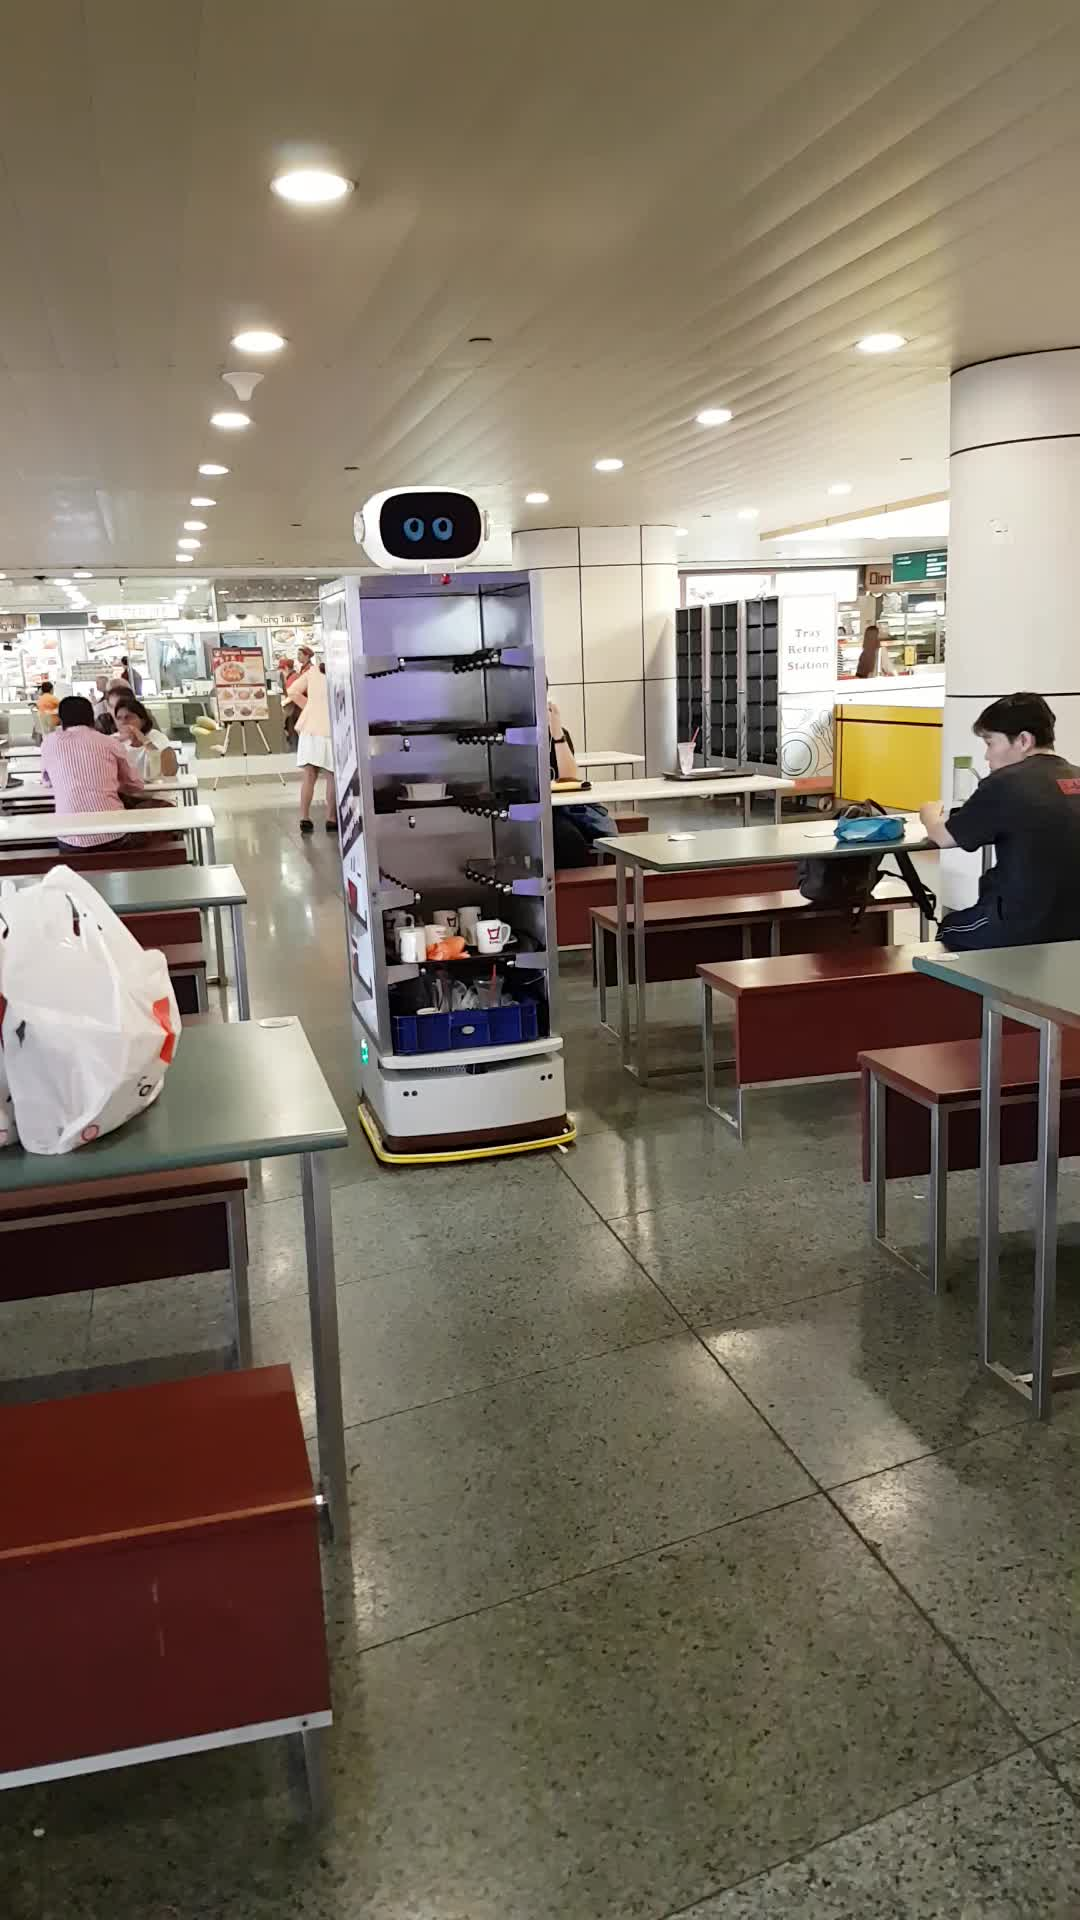 Robot, Singapore, automation, collect, tray, Tray collector GIFs